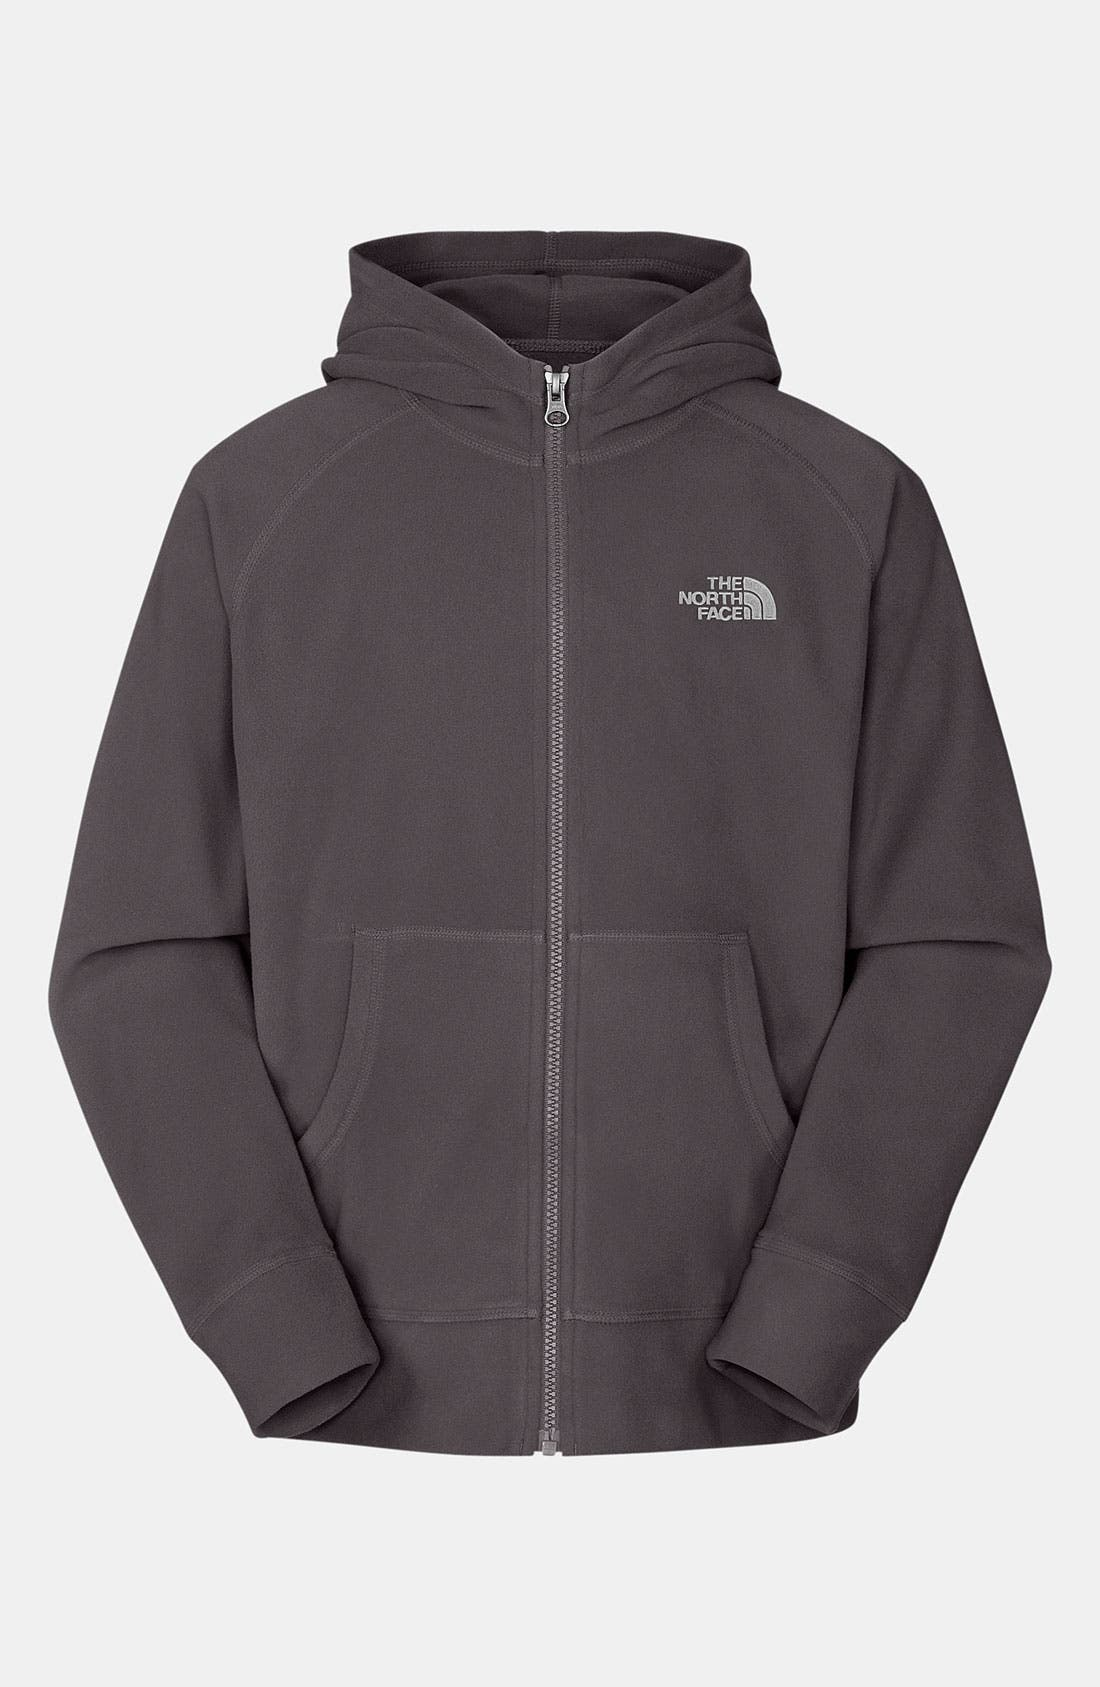 Alternate Image 1 Selected - The North Face 'Glacier' Fleece Hoodie (Little Boys)